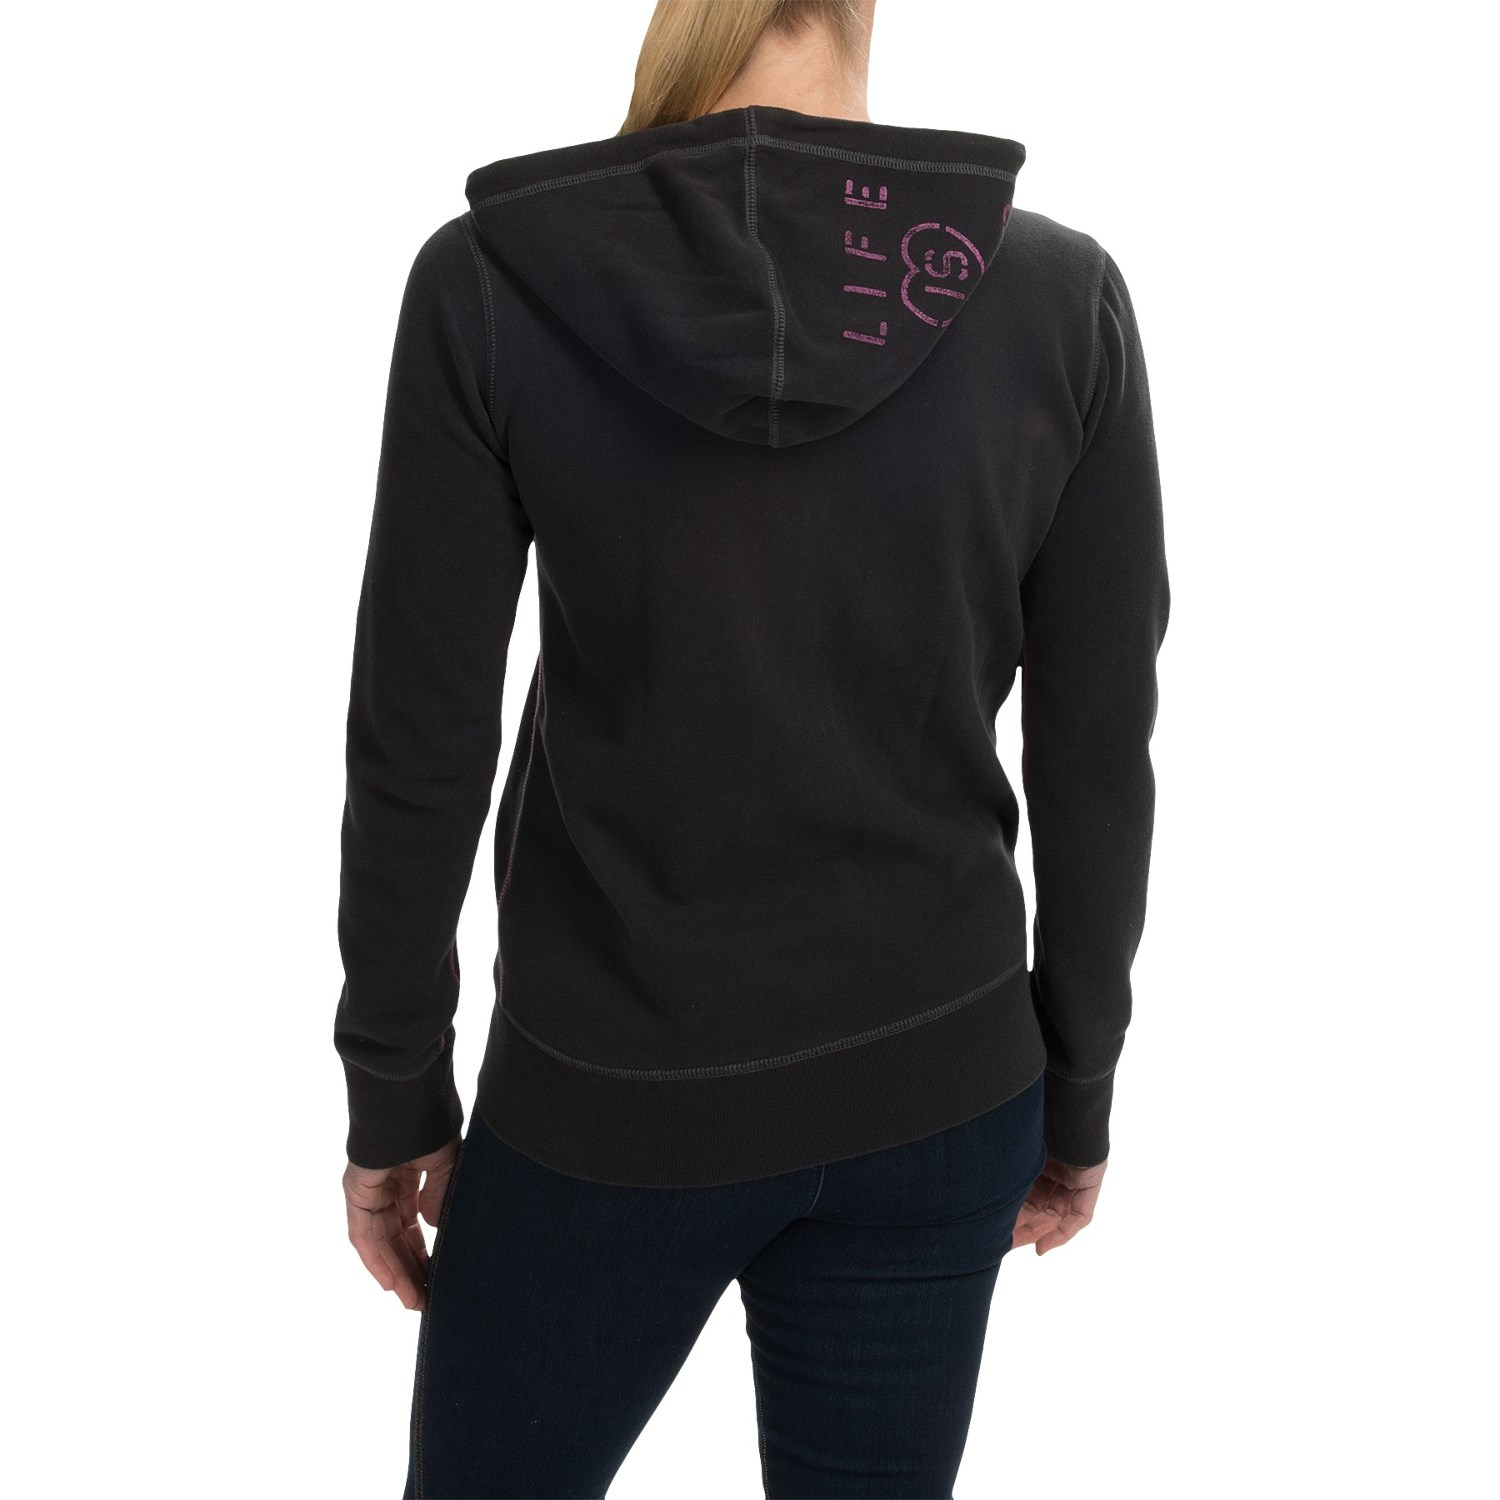 Discover the best Men's Fashion Hoodies & Sweatshirts in Best Sellers. Find the top most popular items in Amazon Best Sellers.